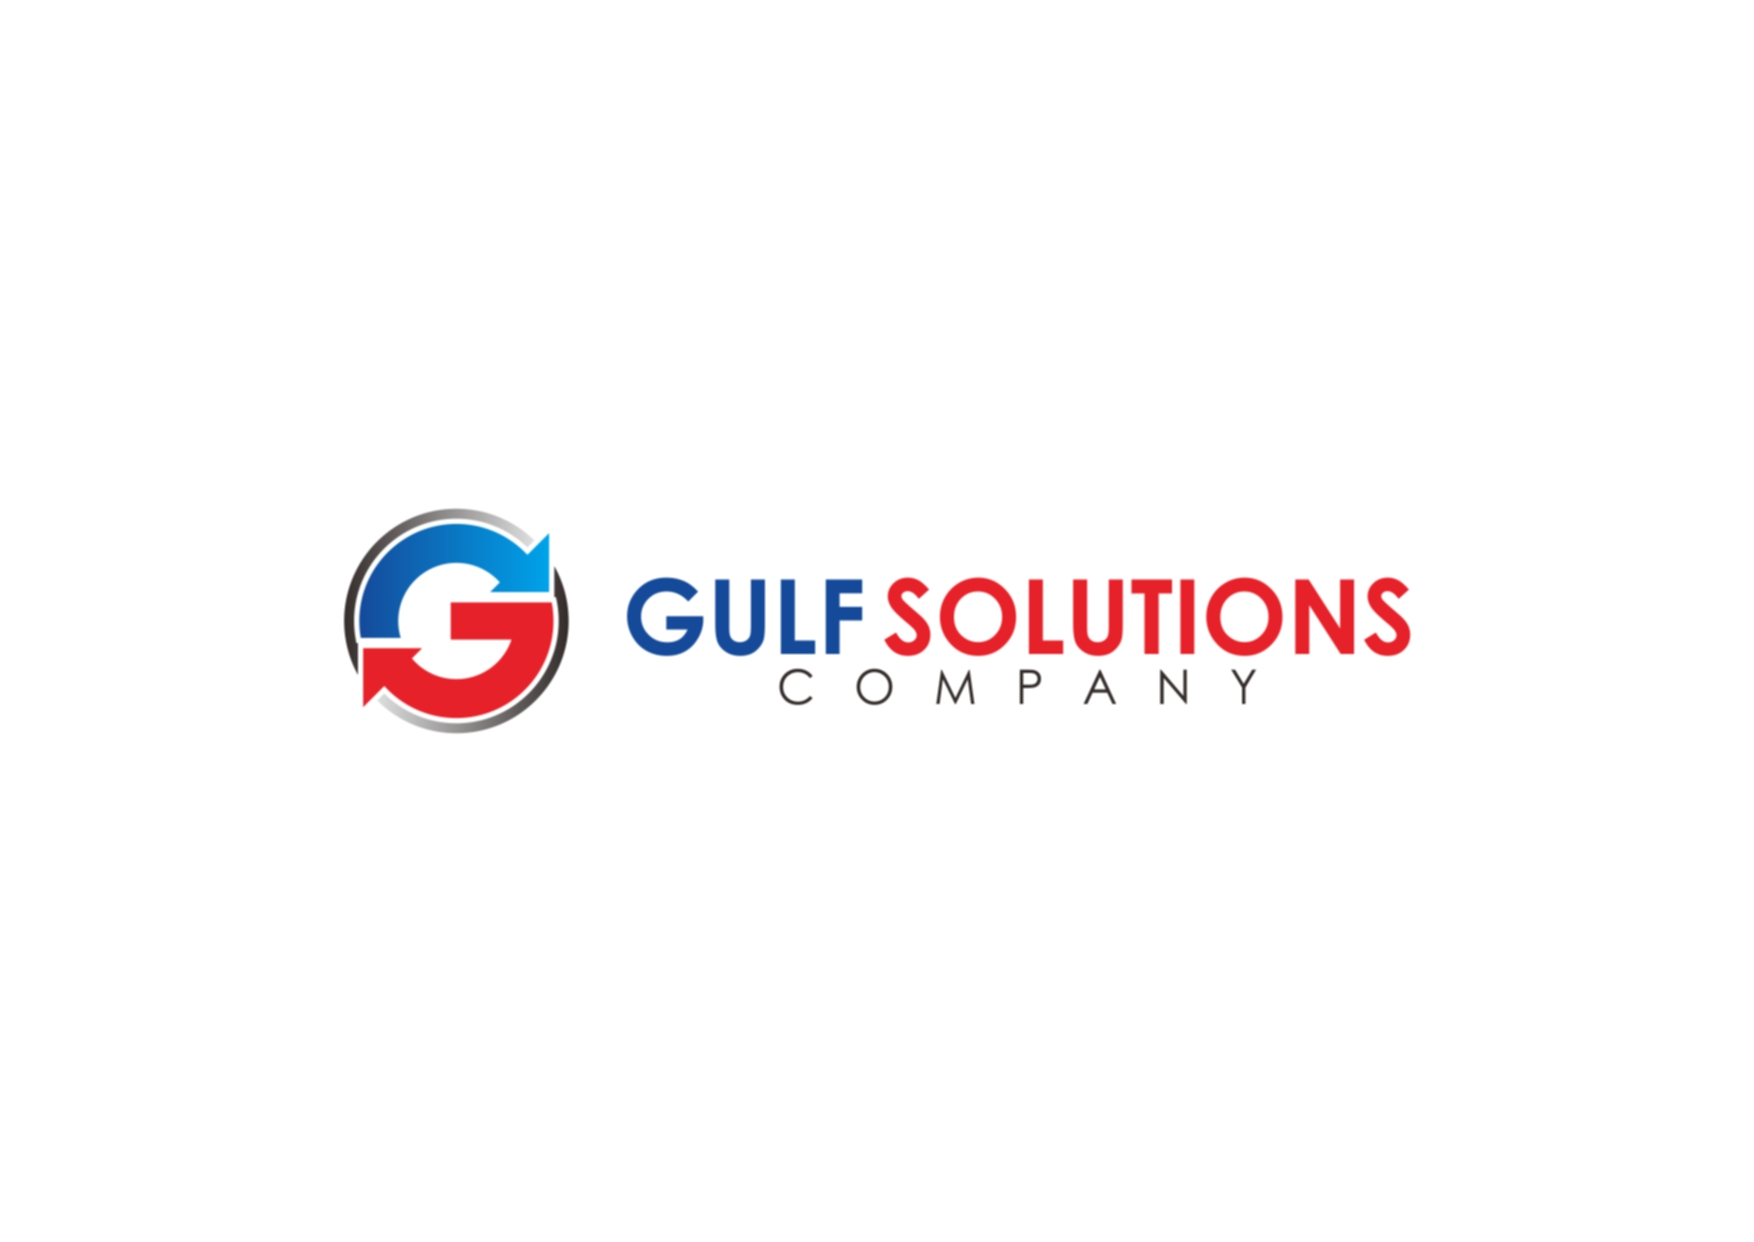 Logo Design by Private User - Entry No. 53 in the Logo Design Contest New Logo Design for Gulf solutions company.